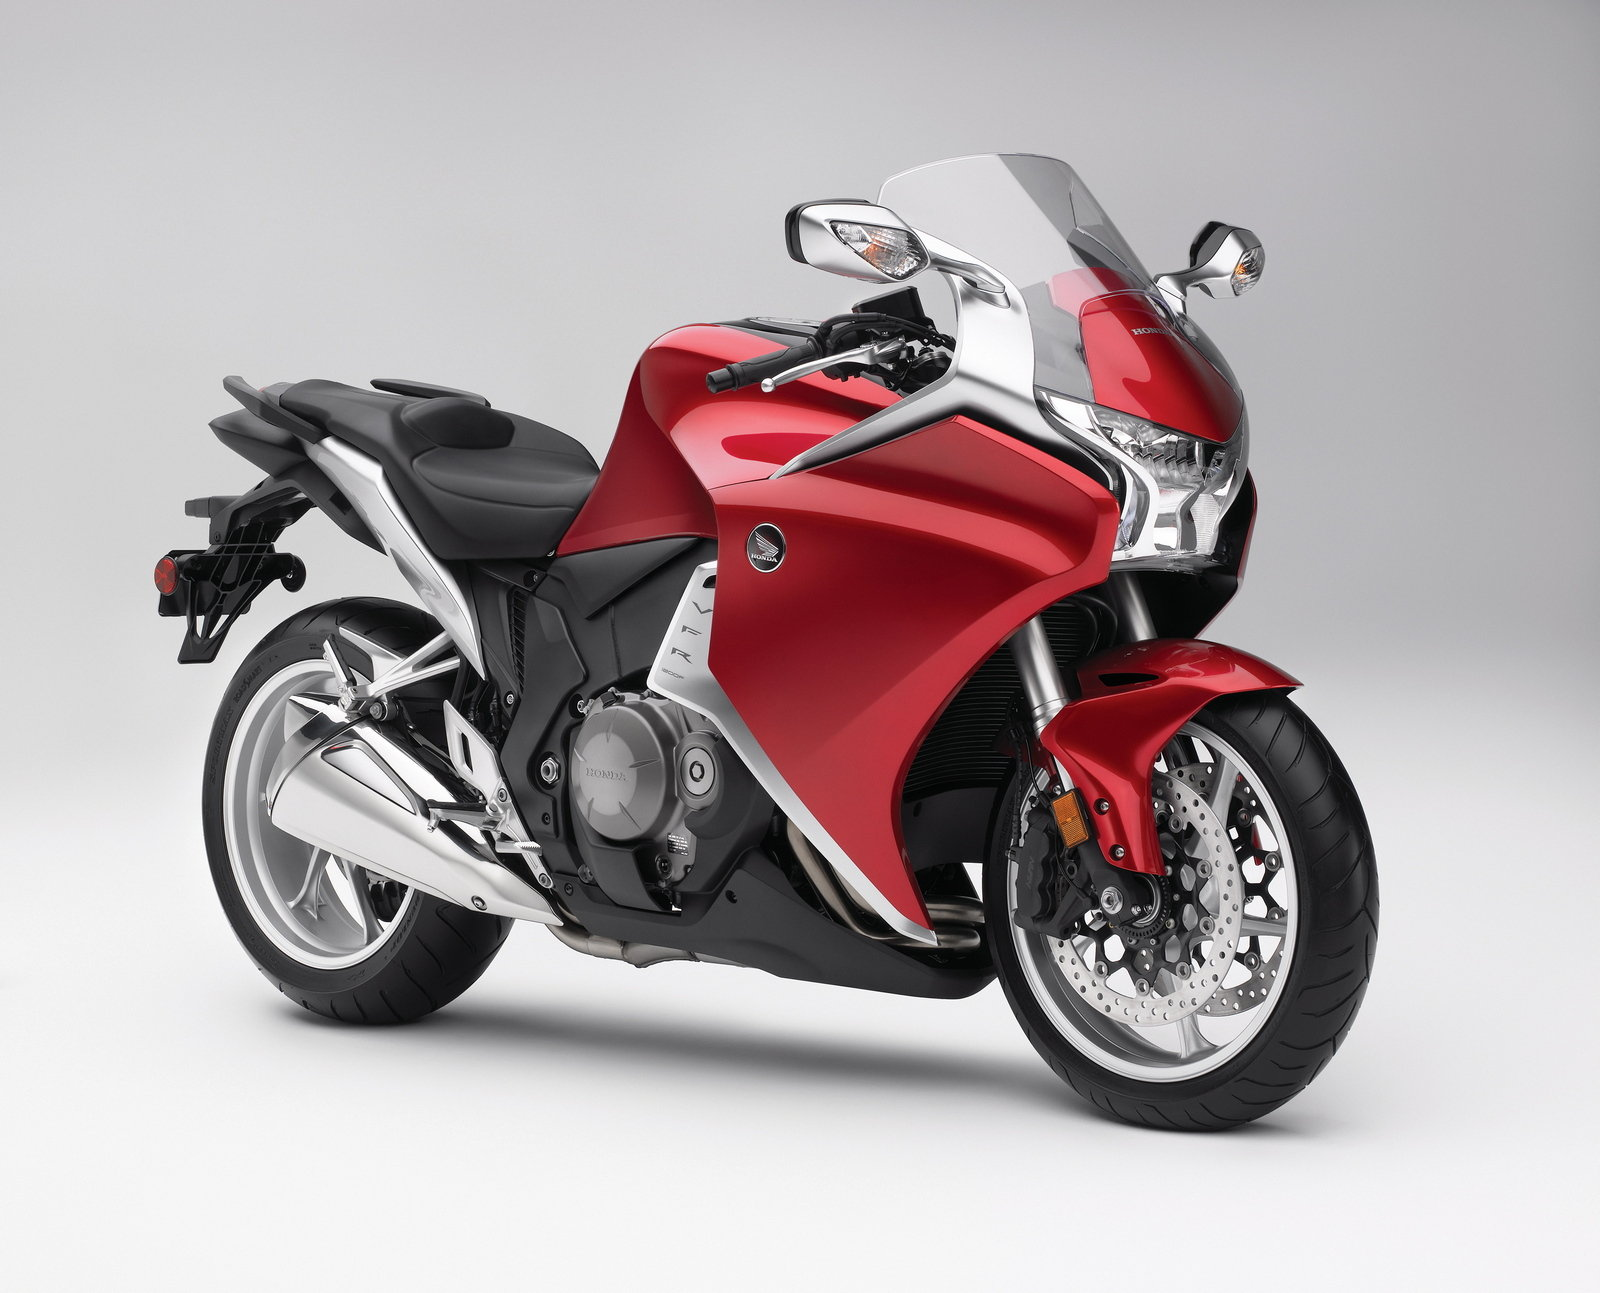 2010 honda vfr1200f picture 326073 motorcycle review top speed. Black Bedroom Furniture Sets. Home Design Ideas